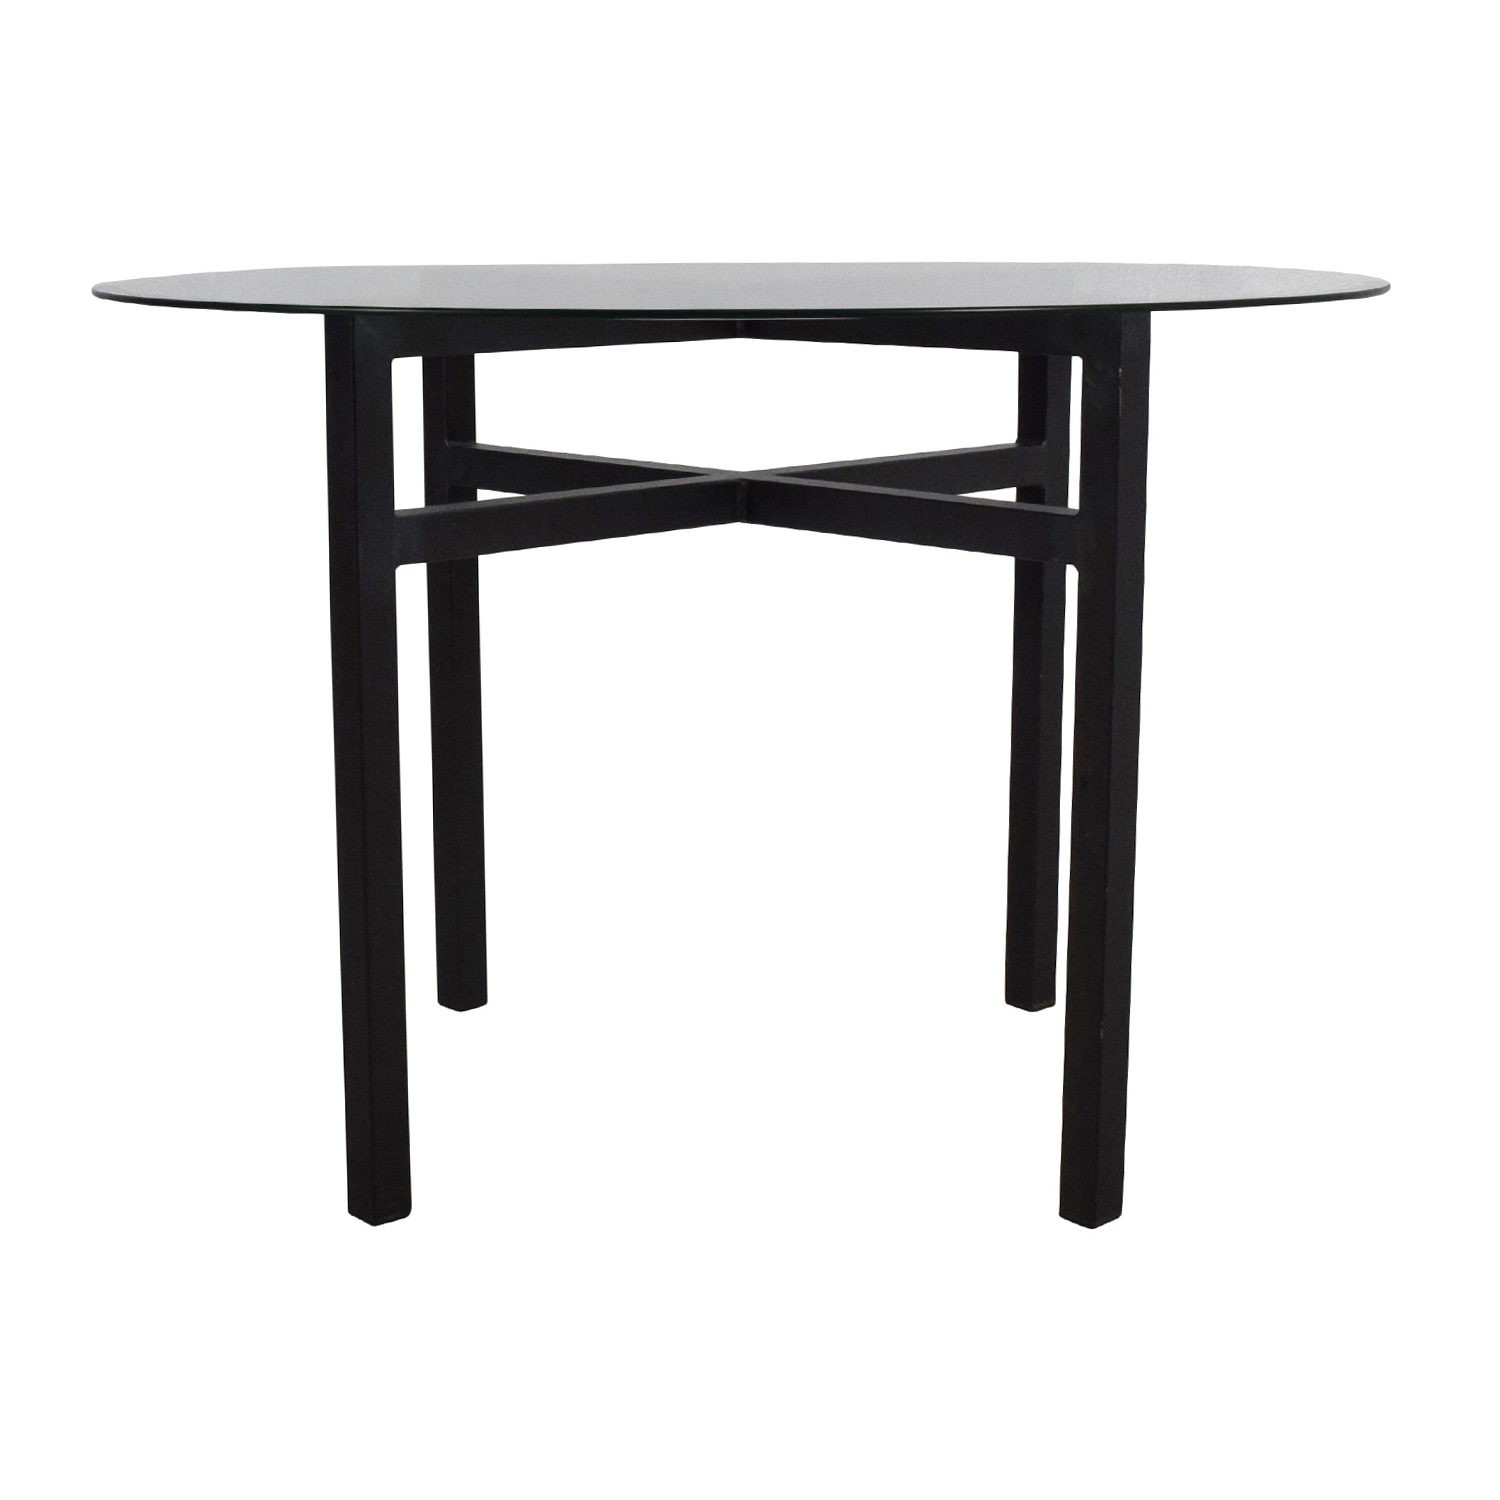 Room And Board Room U0026 Board Benson Glass Top Dining Table ...